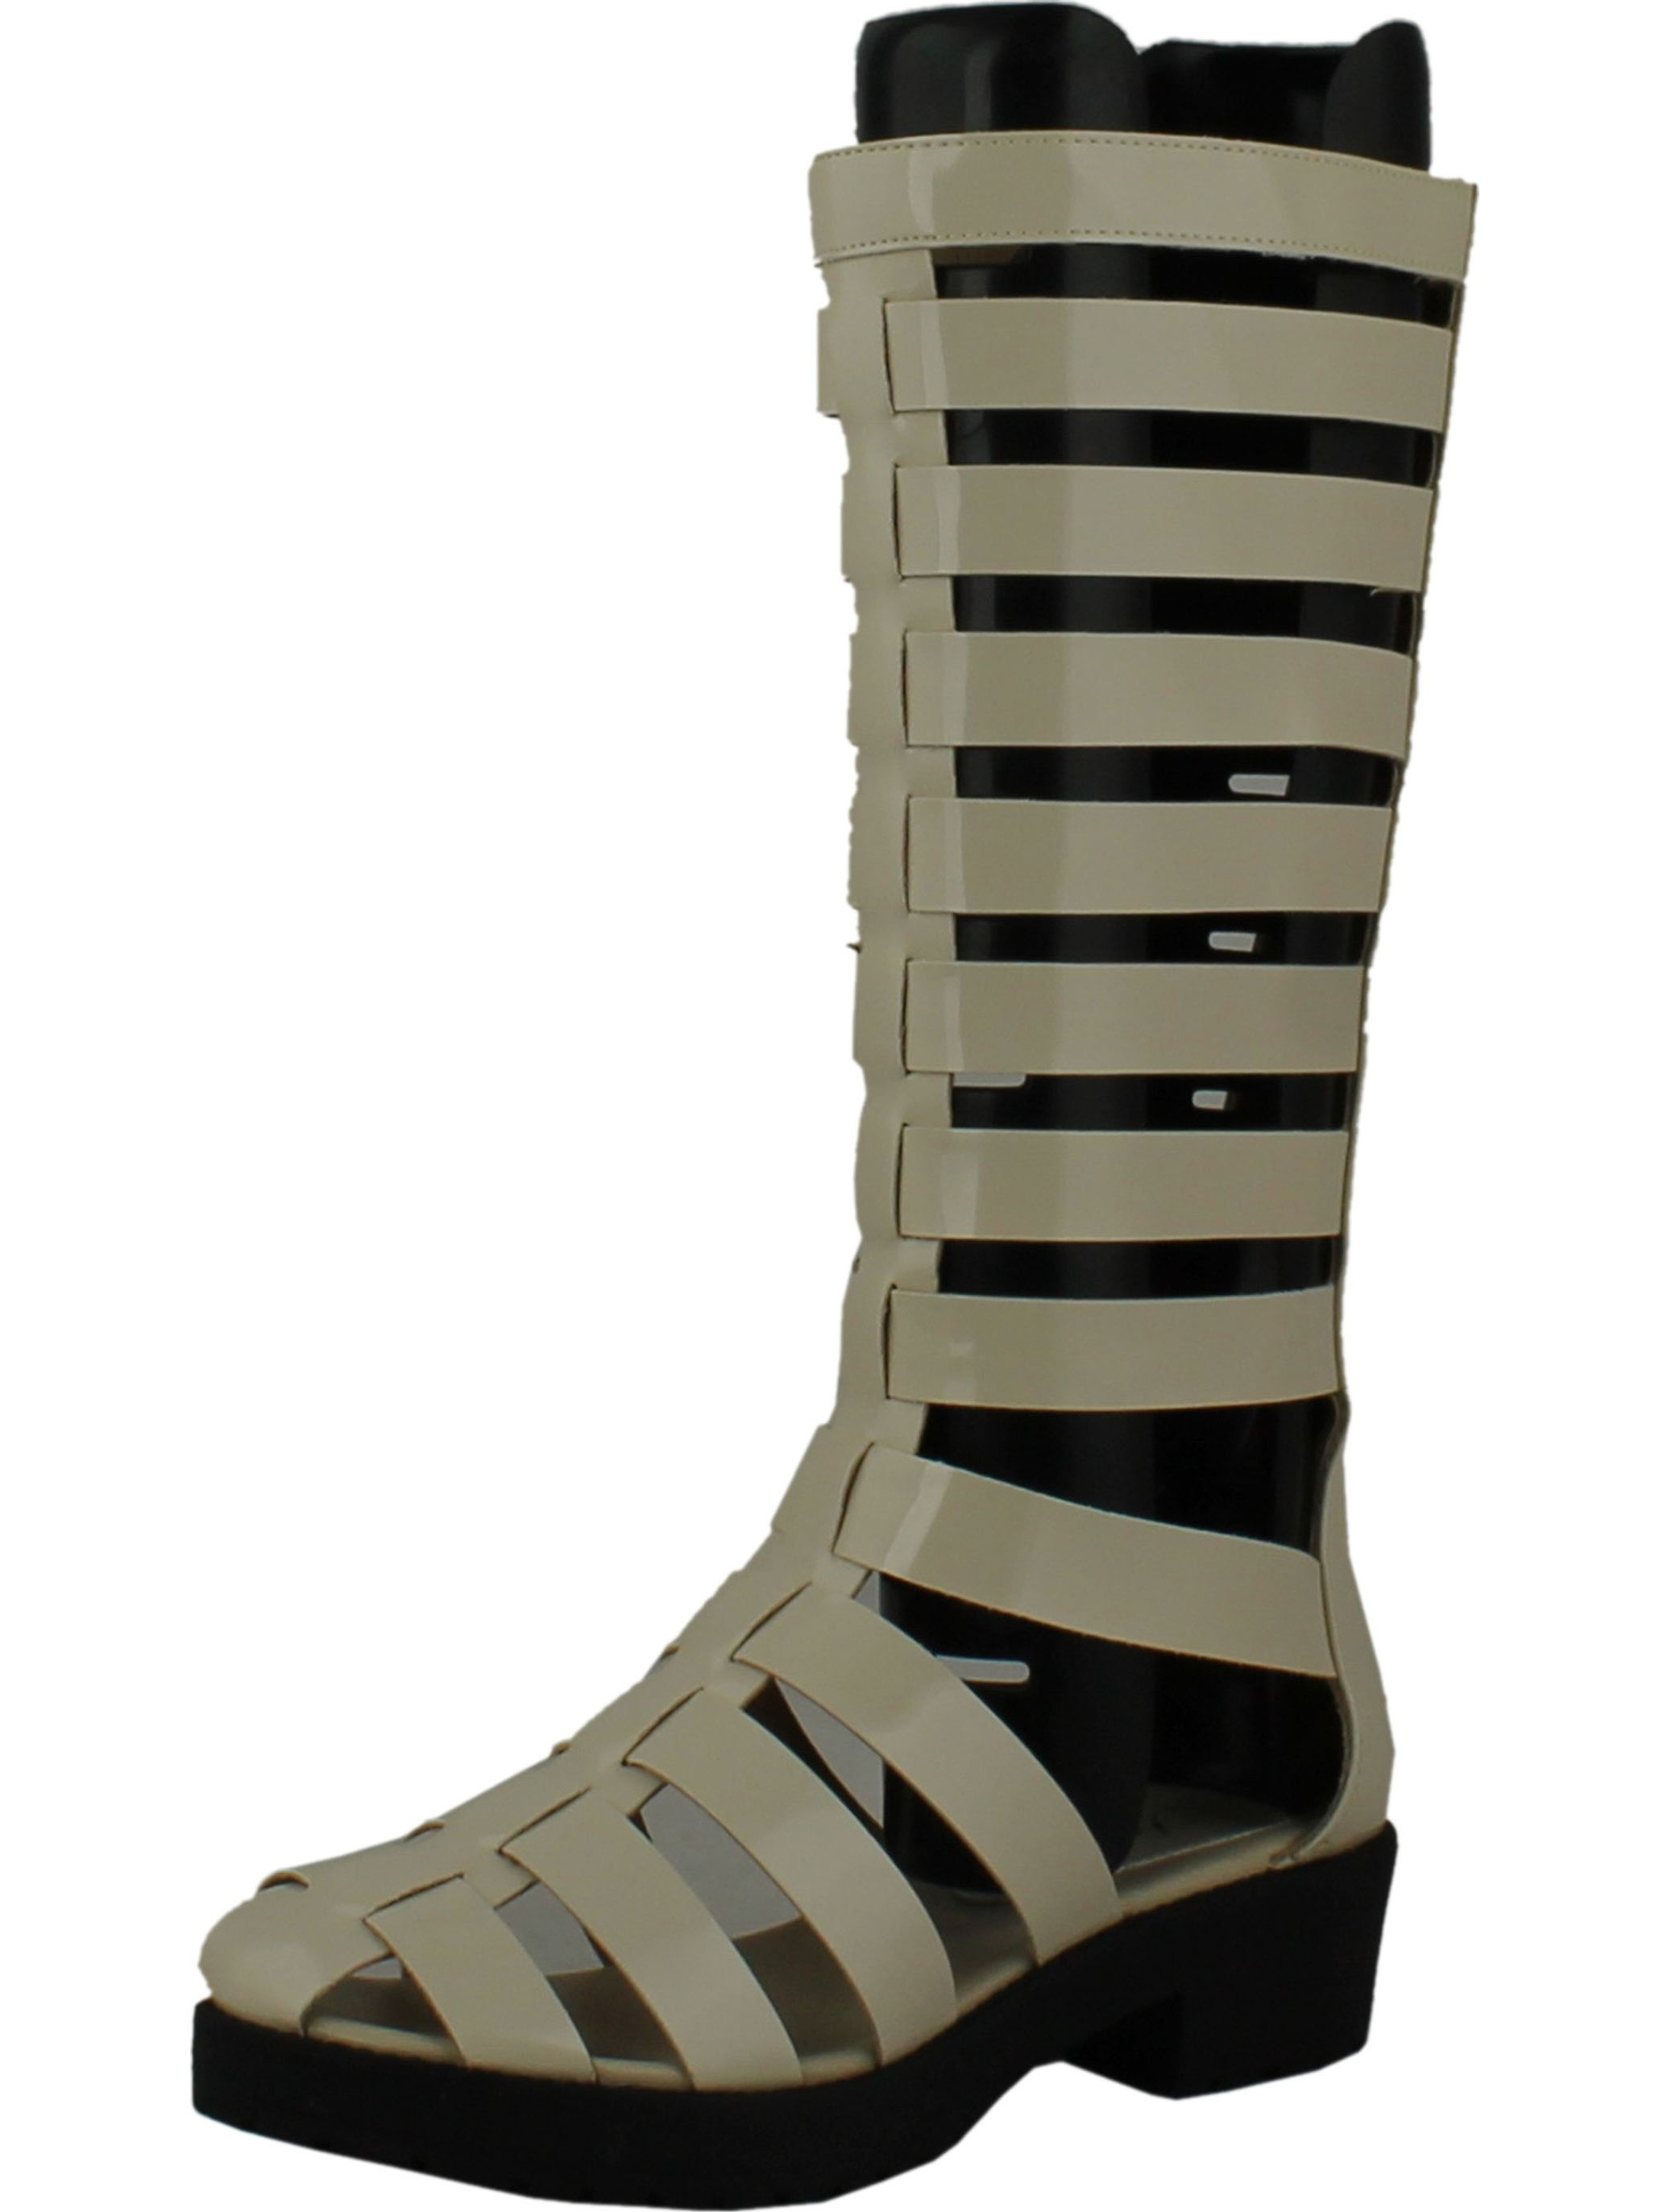 FOREVER KENDAL-2 Women's Hot Fashion Keen High Strappy Gladiator Comfort Sandals by Forever Link